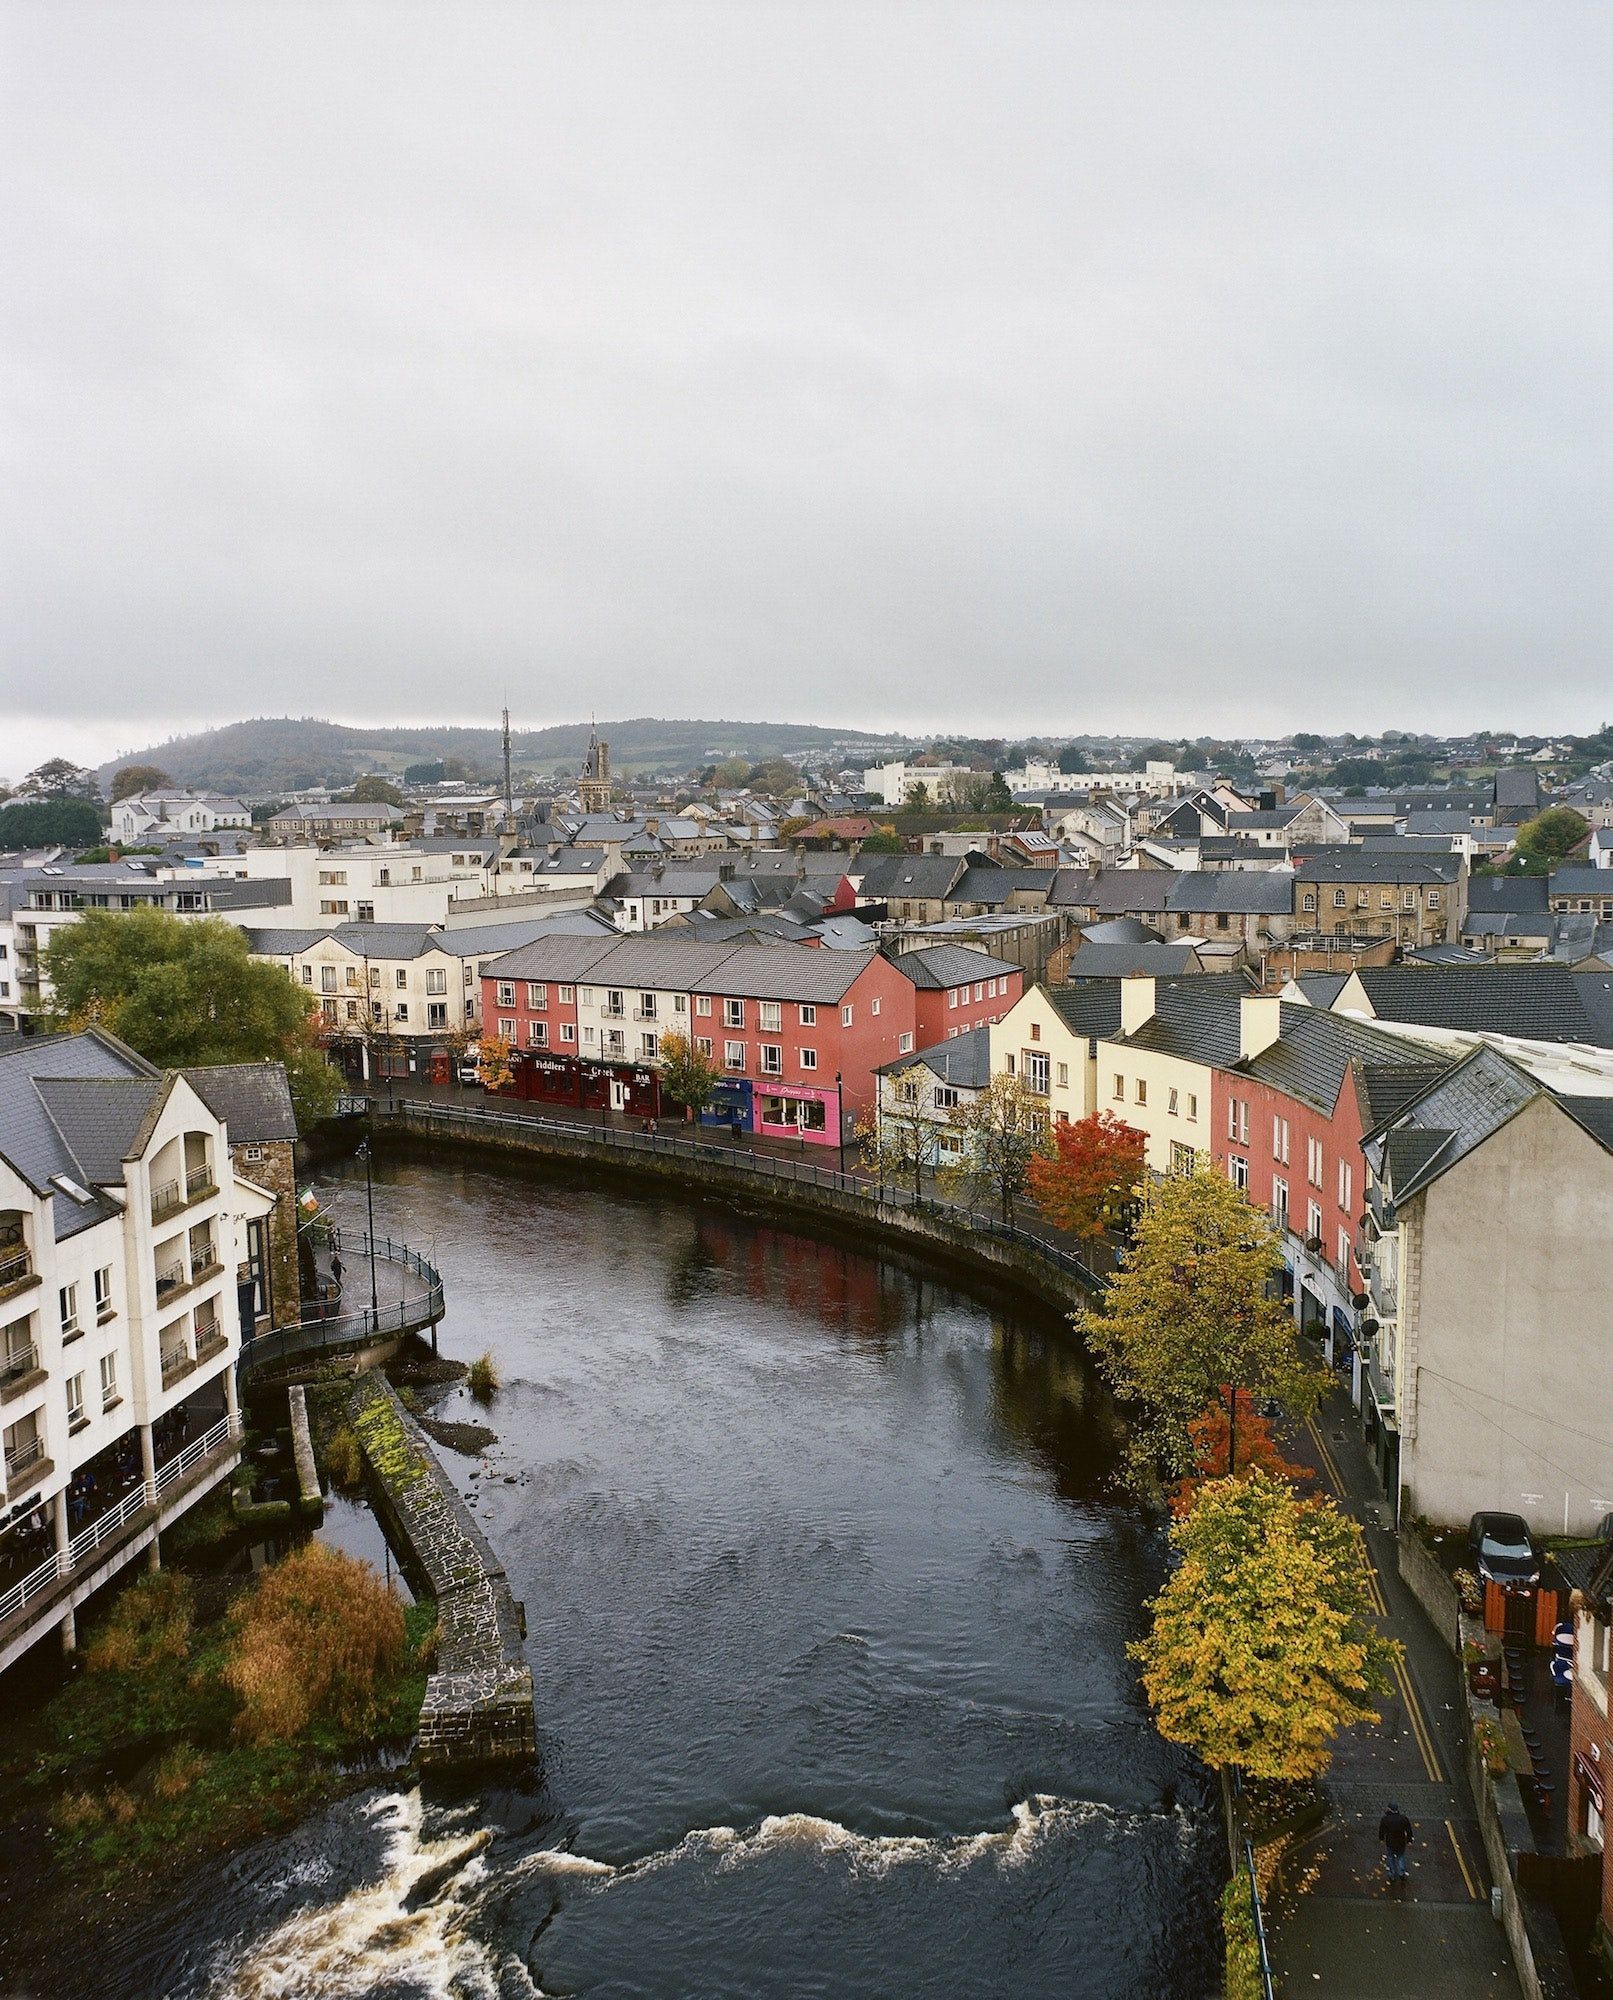 A view of the rooftops and colorful homes of Sligo.